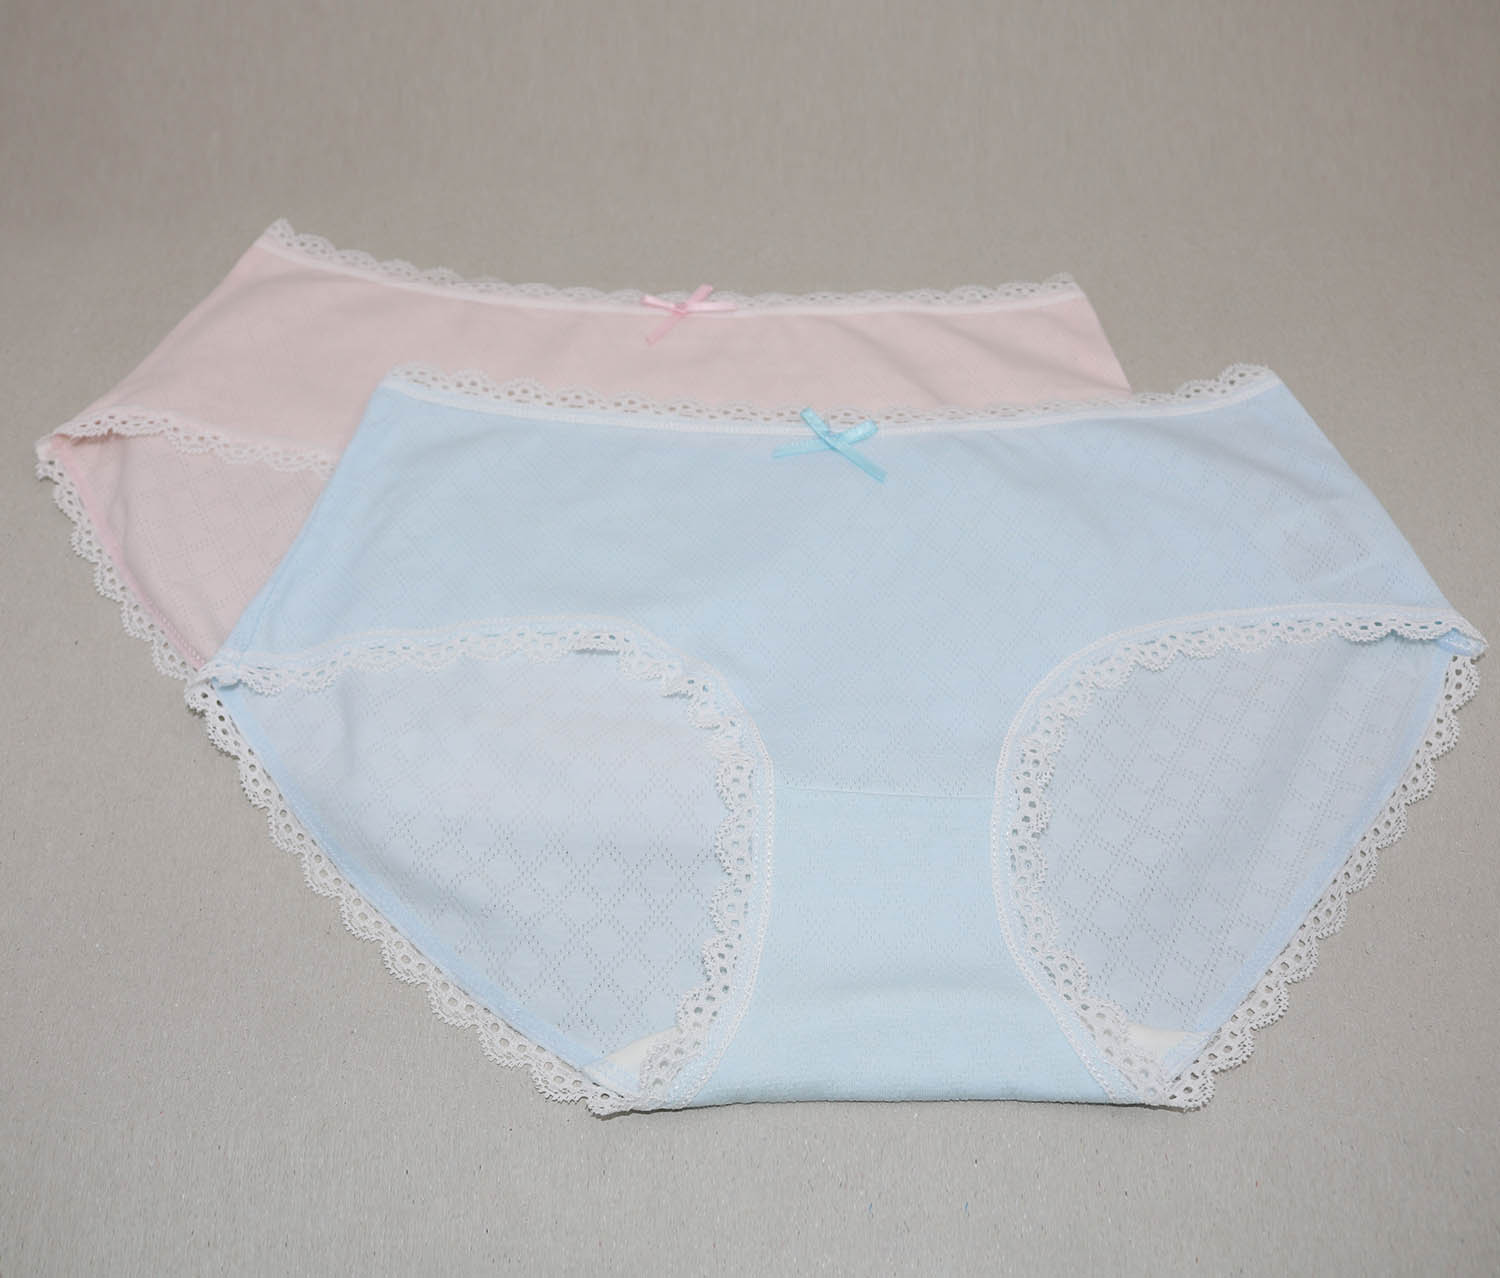 Women's Underwear 2 Pack, Light Blue/Light Pink